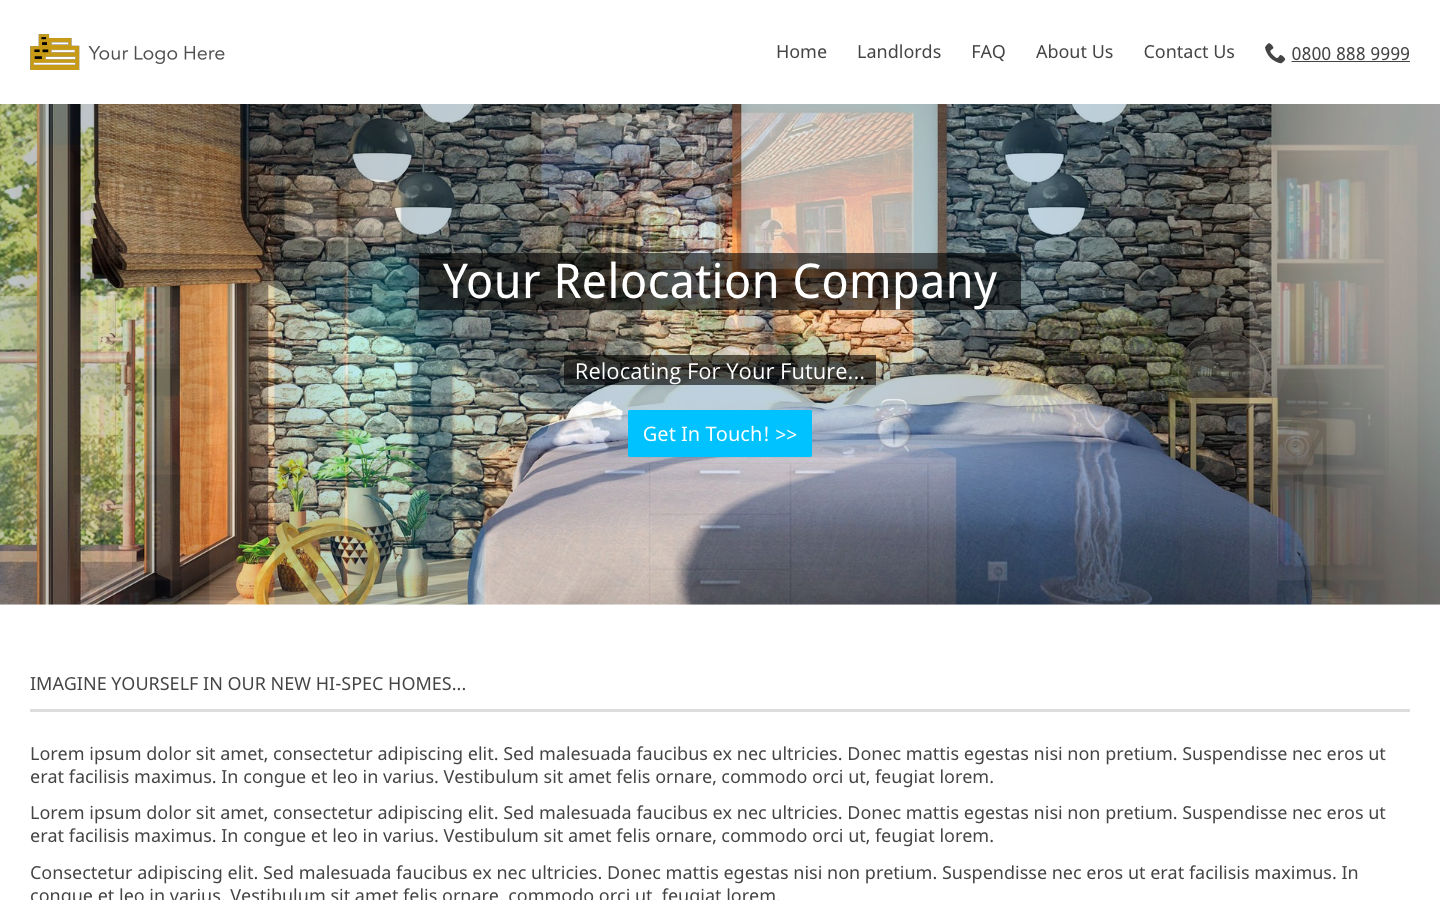 Rent to rent relocation company website theme